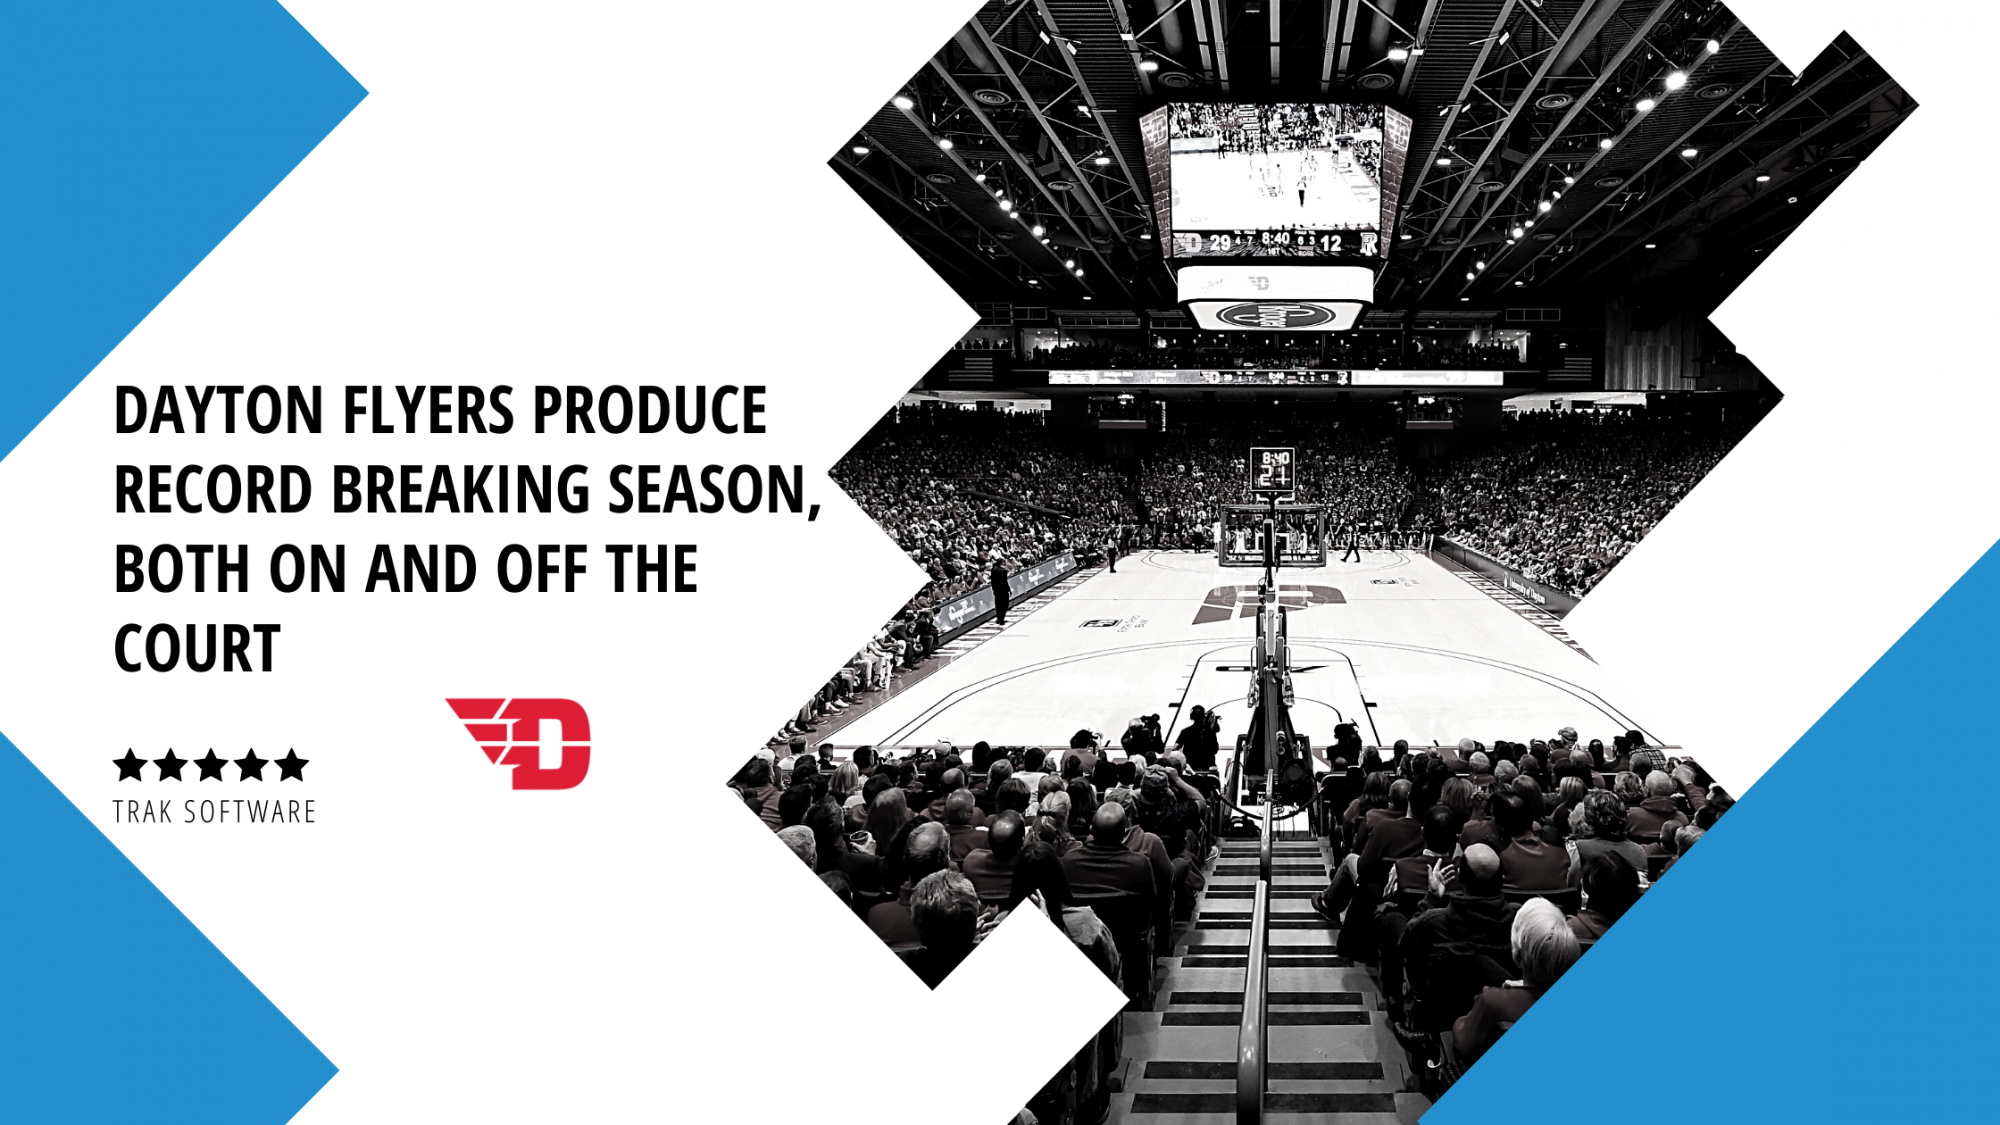 Dayton Flyers Customer Story